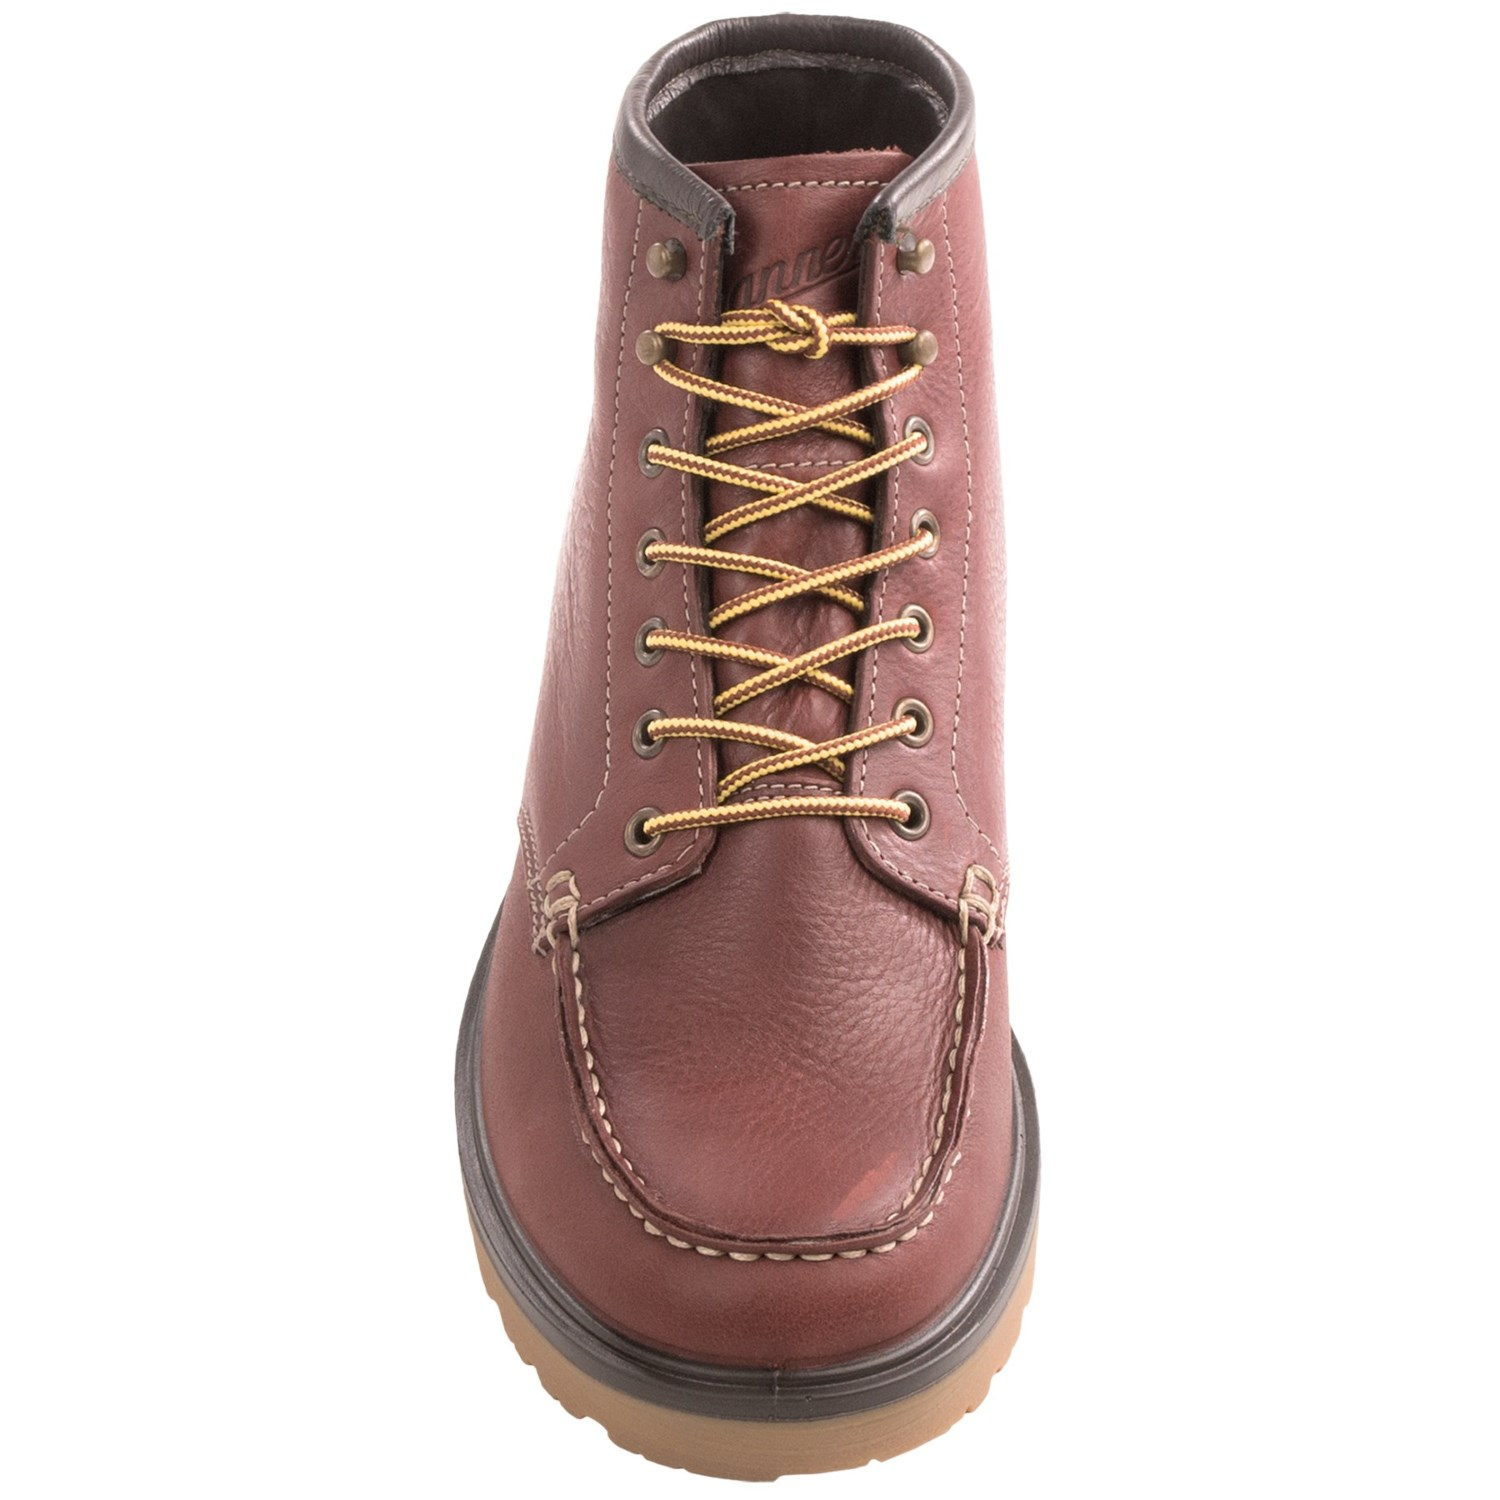 Danner Work Boots Clearance - Boot Yc